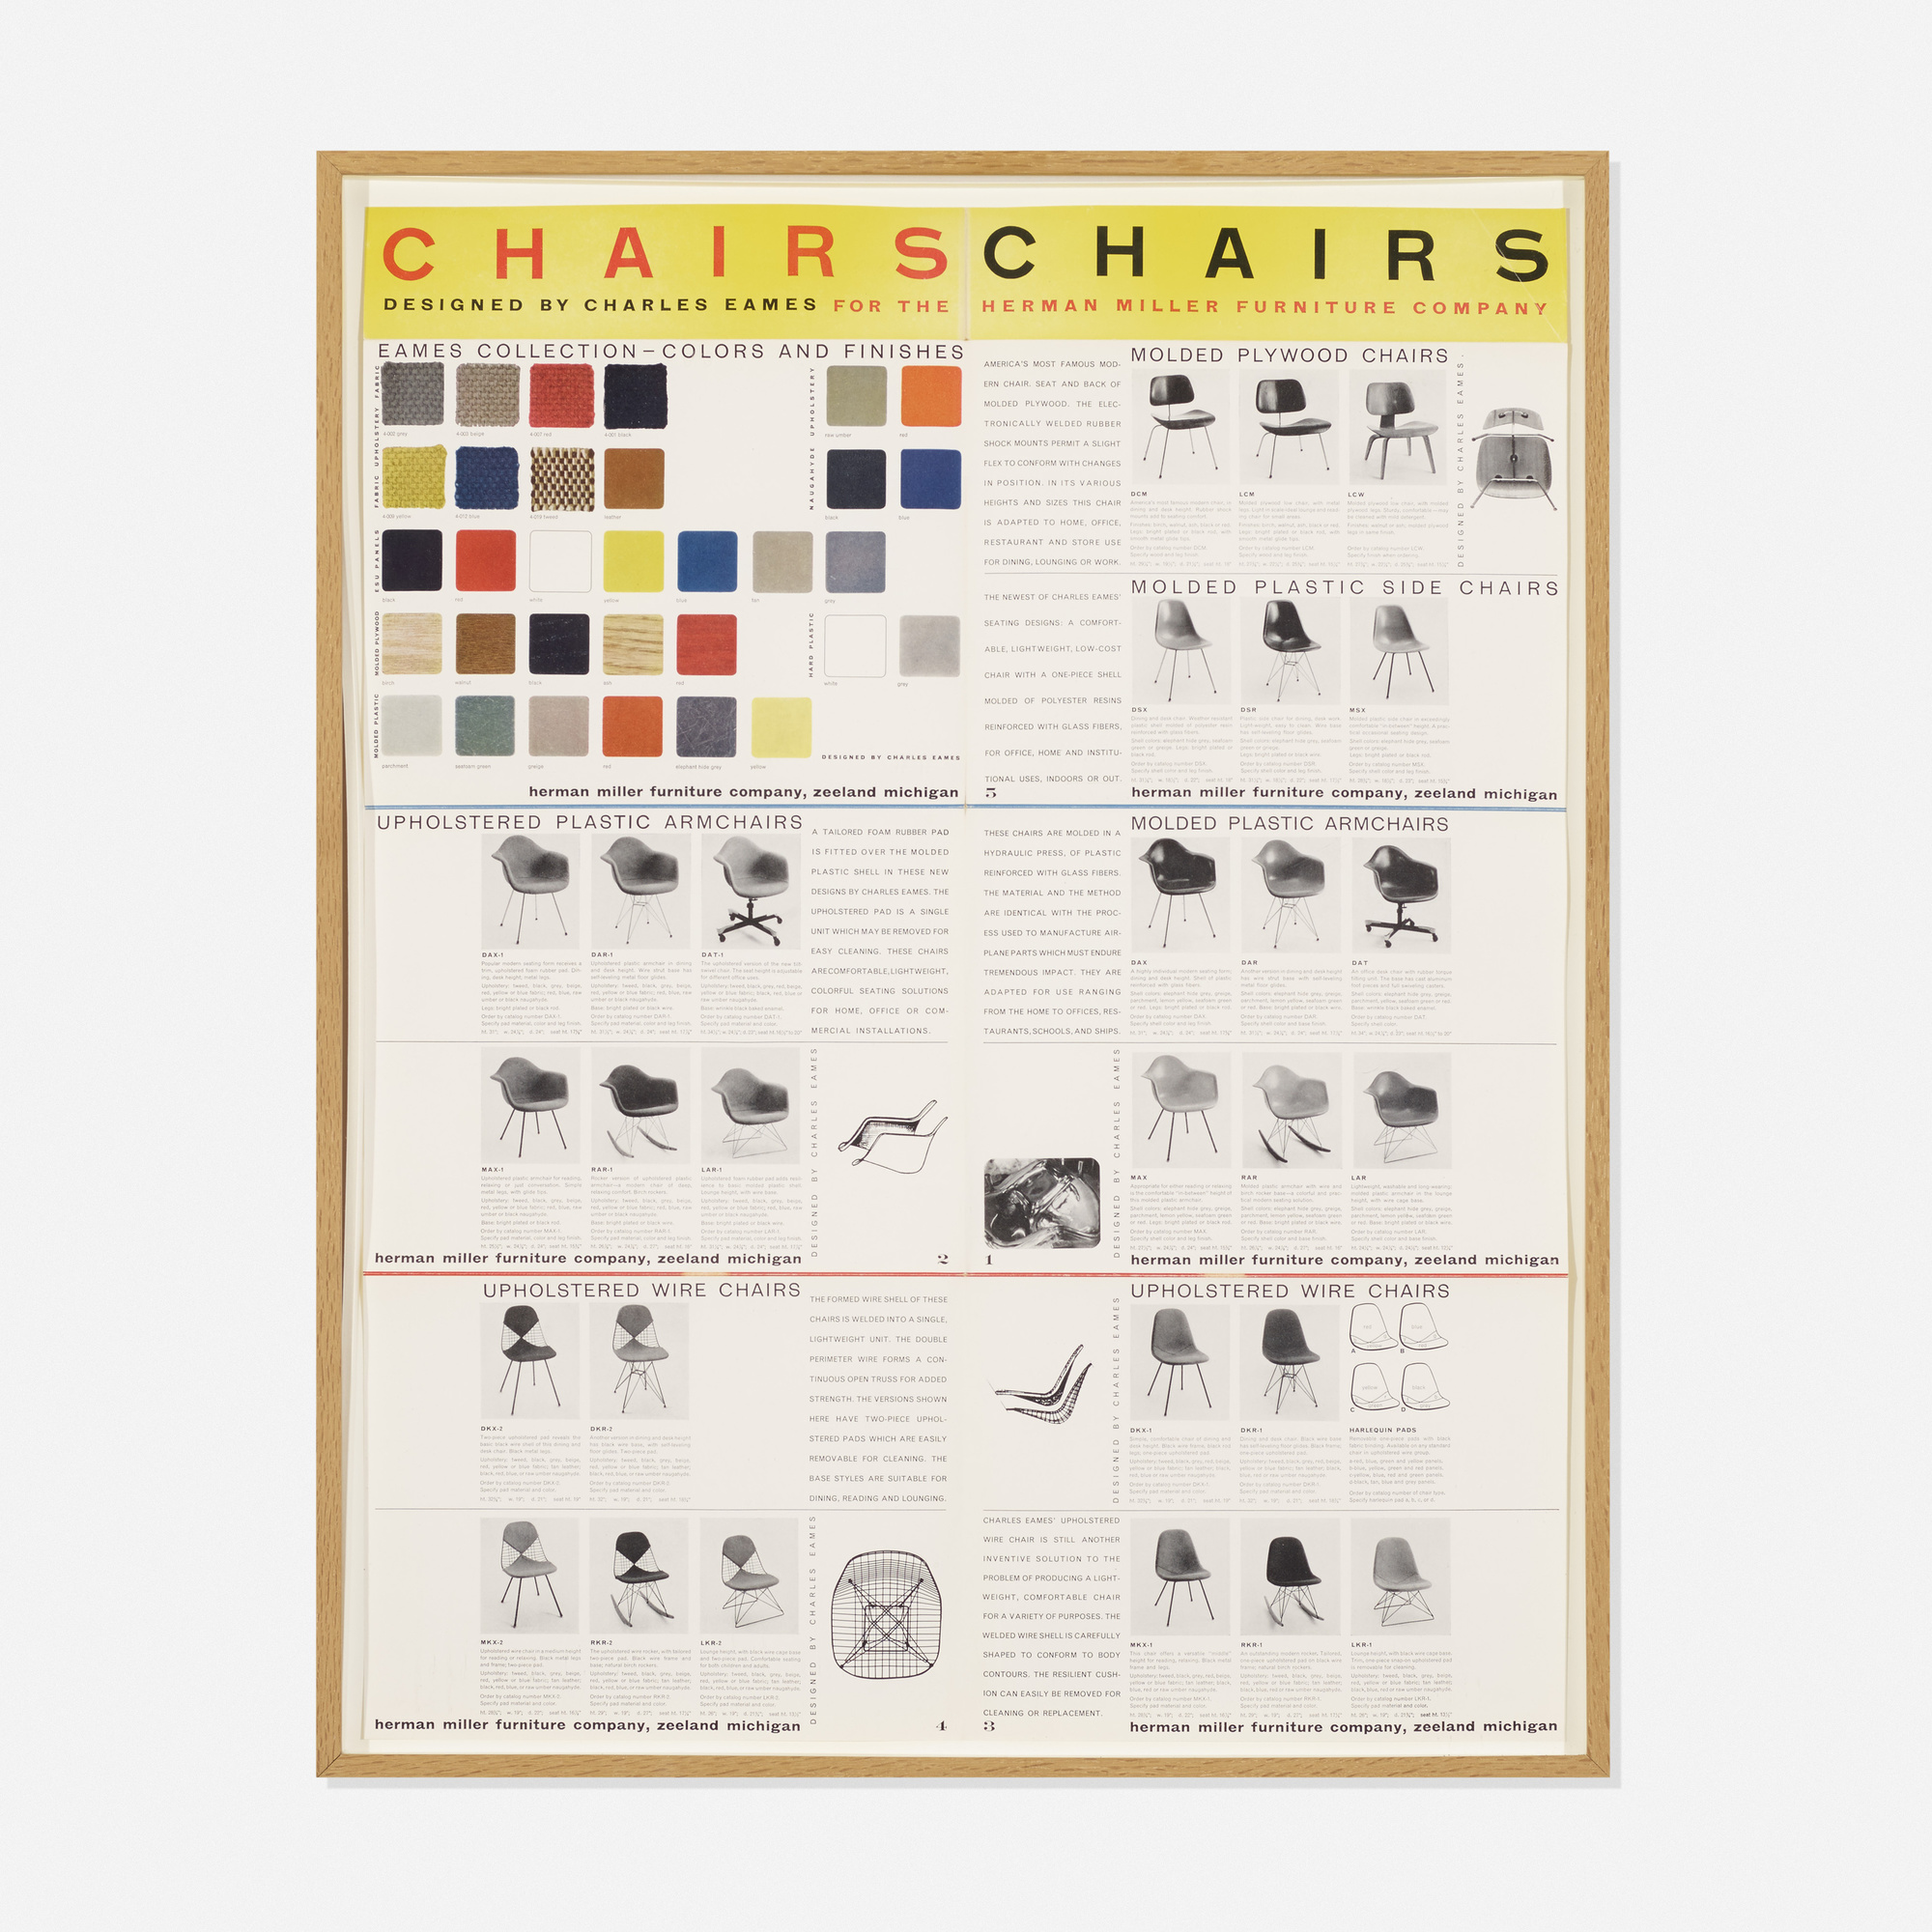 254: Charles and Ray Eames / manufacturer's poster (1 of 1)